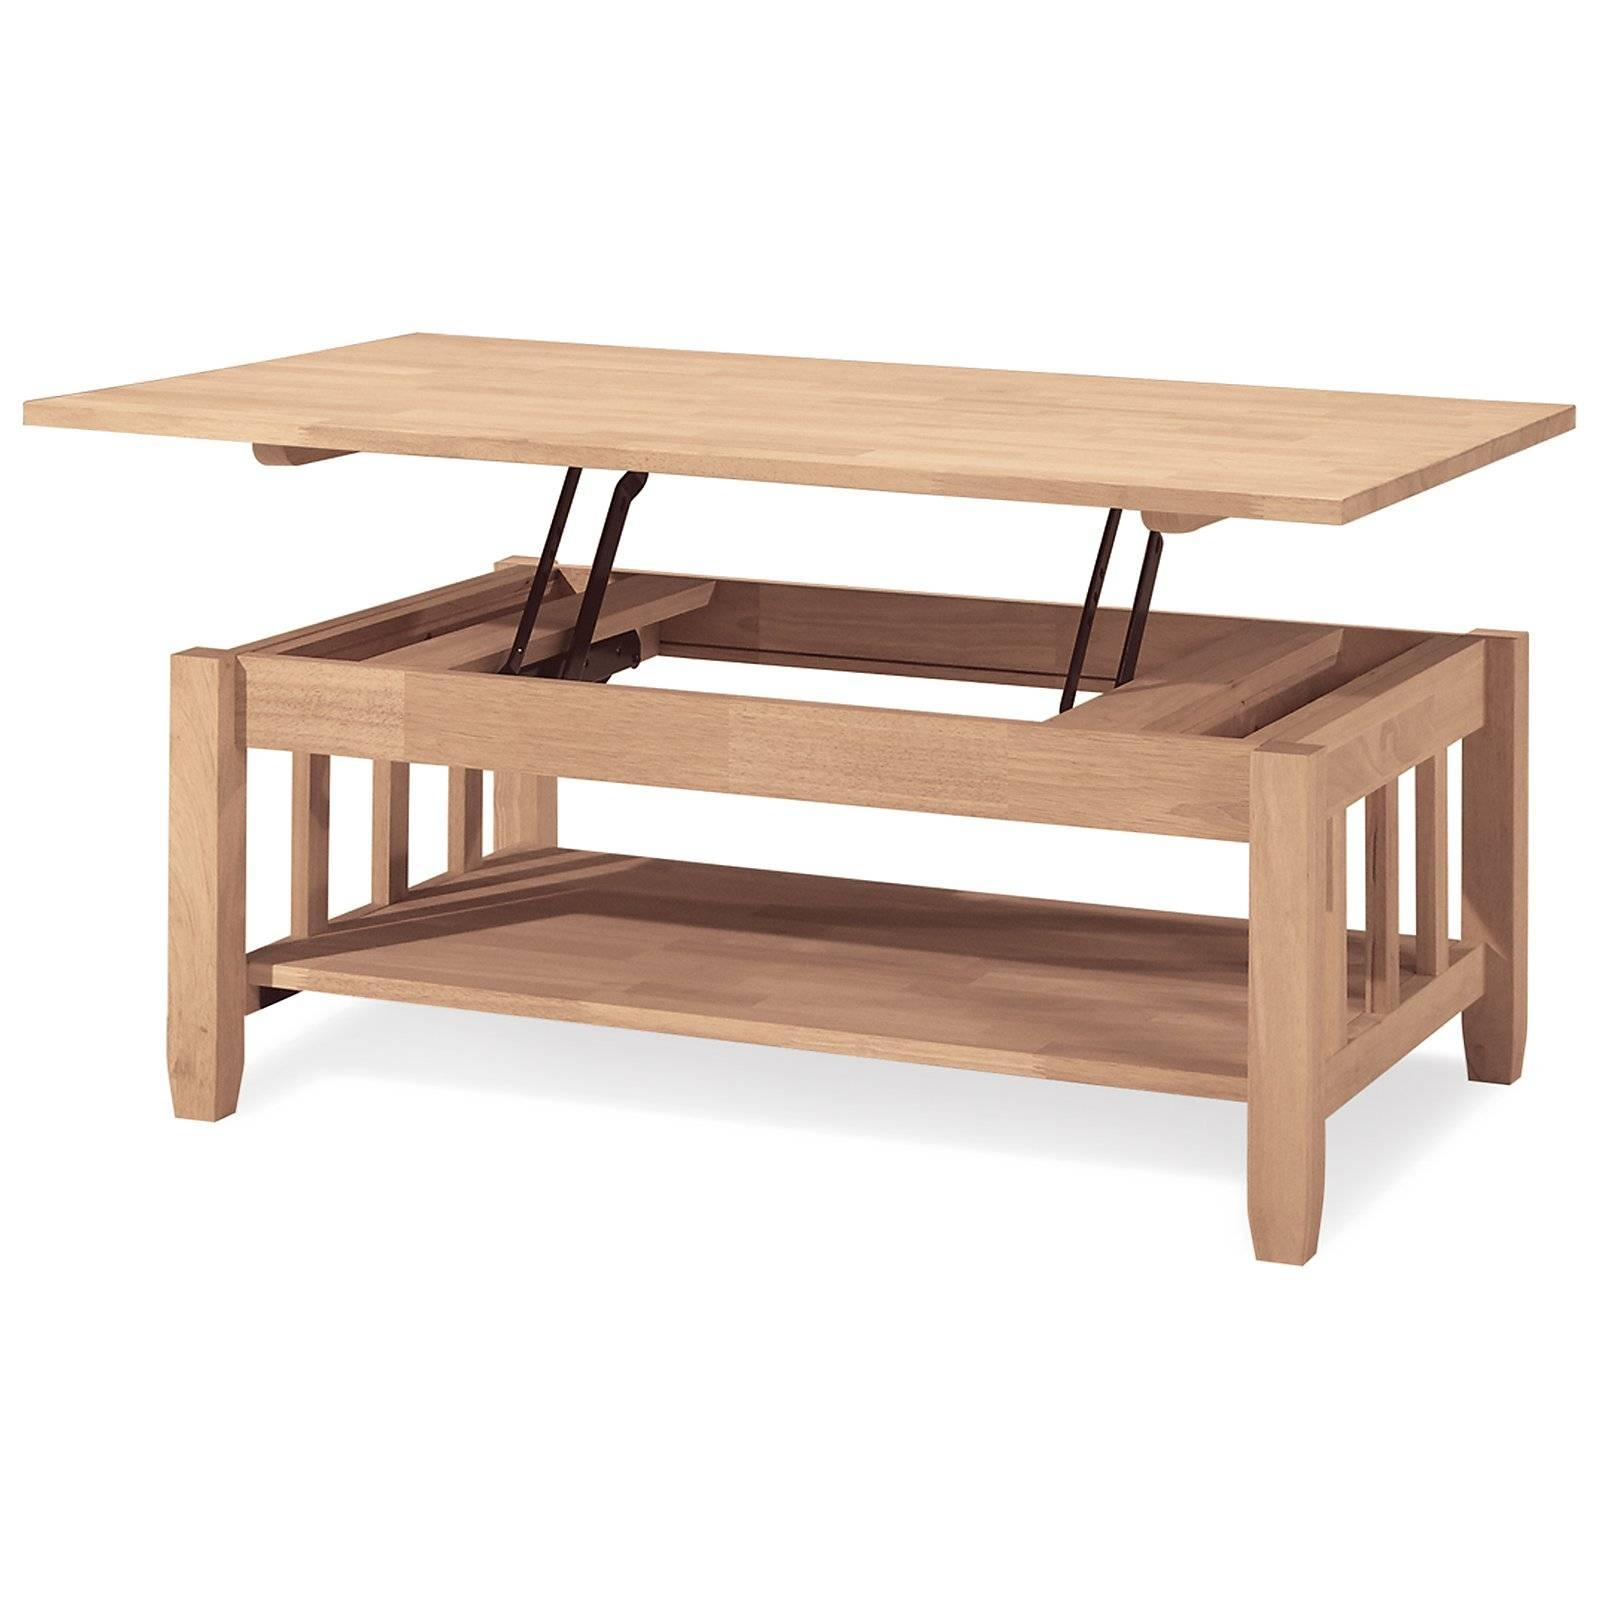 International Concepts Mission Solid Wood Lift Top Coffee Table in Raisable Coffee Tables (Image 20 of 30)